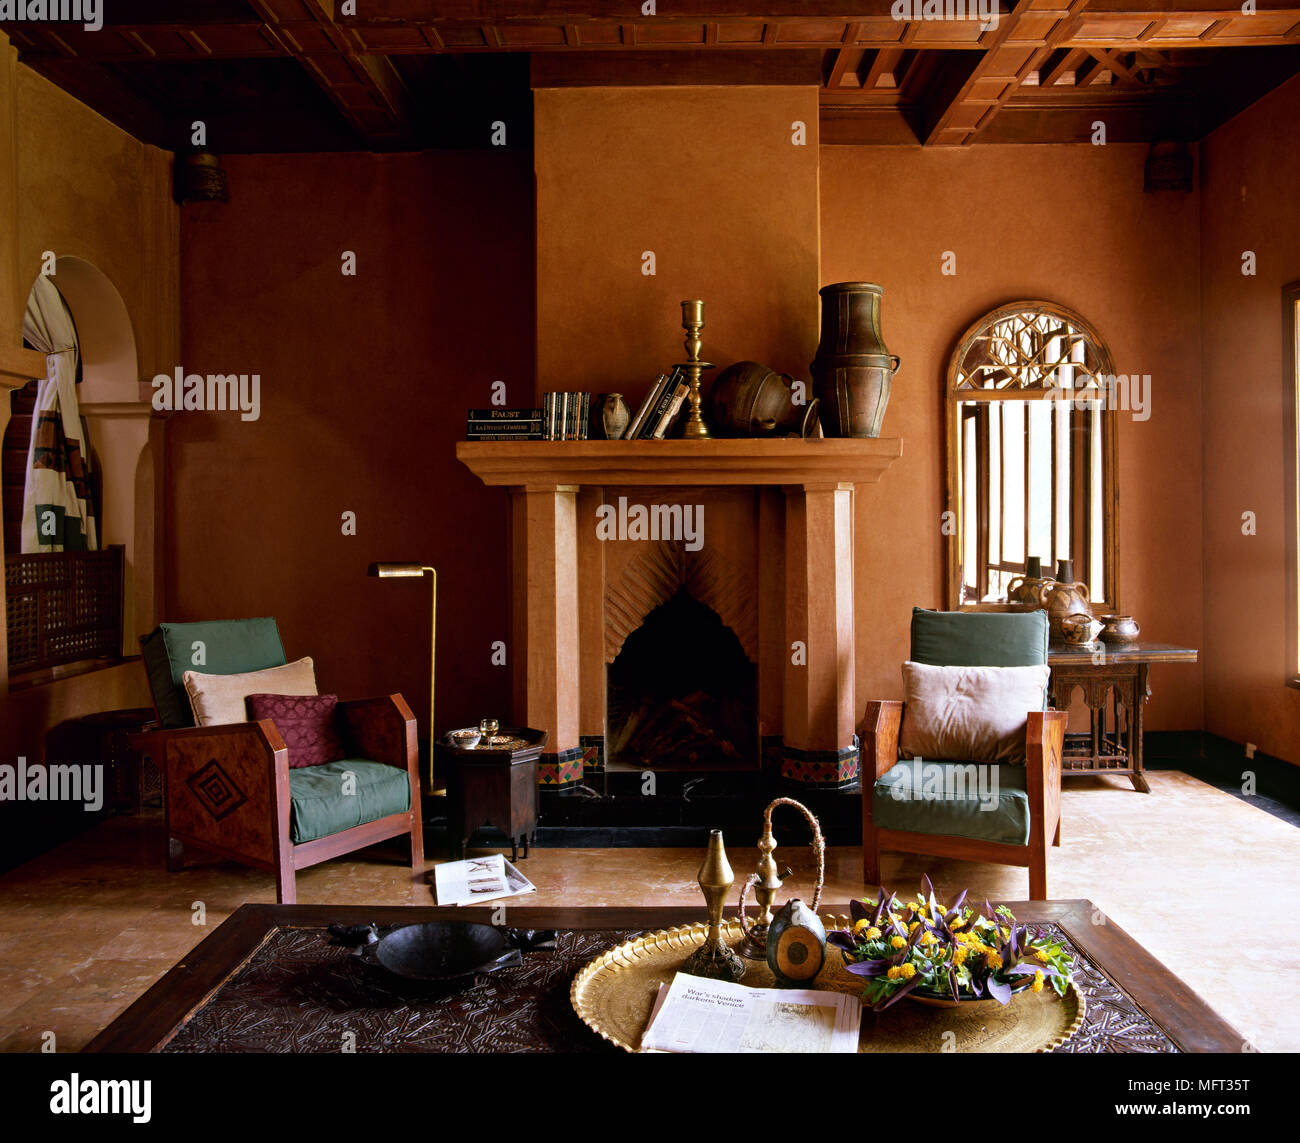 Moroccan Hotel Suite Sitting Room Fireplace Interiors Hotels Rooms